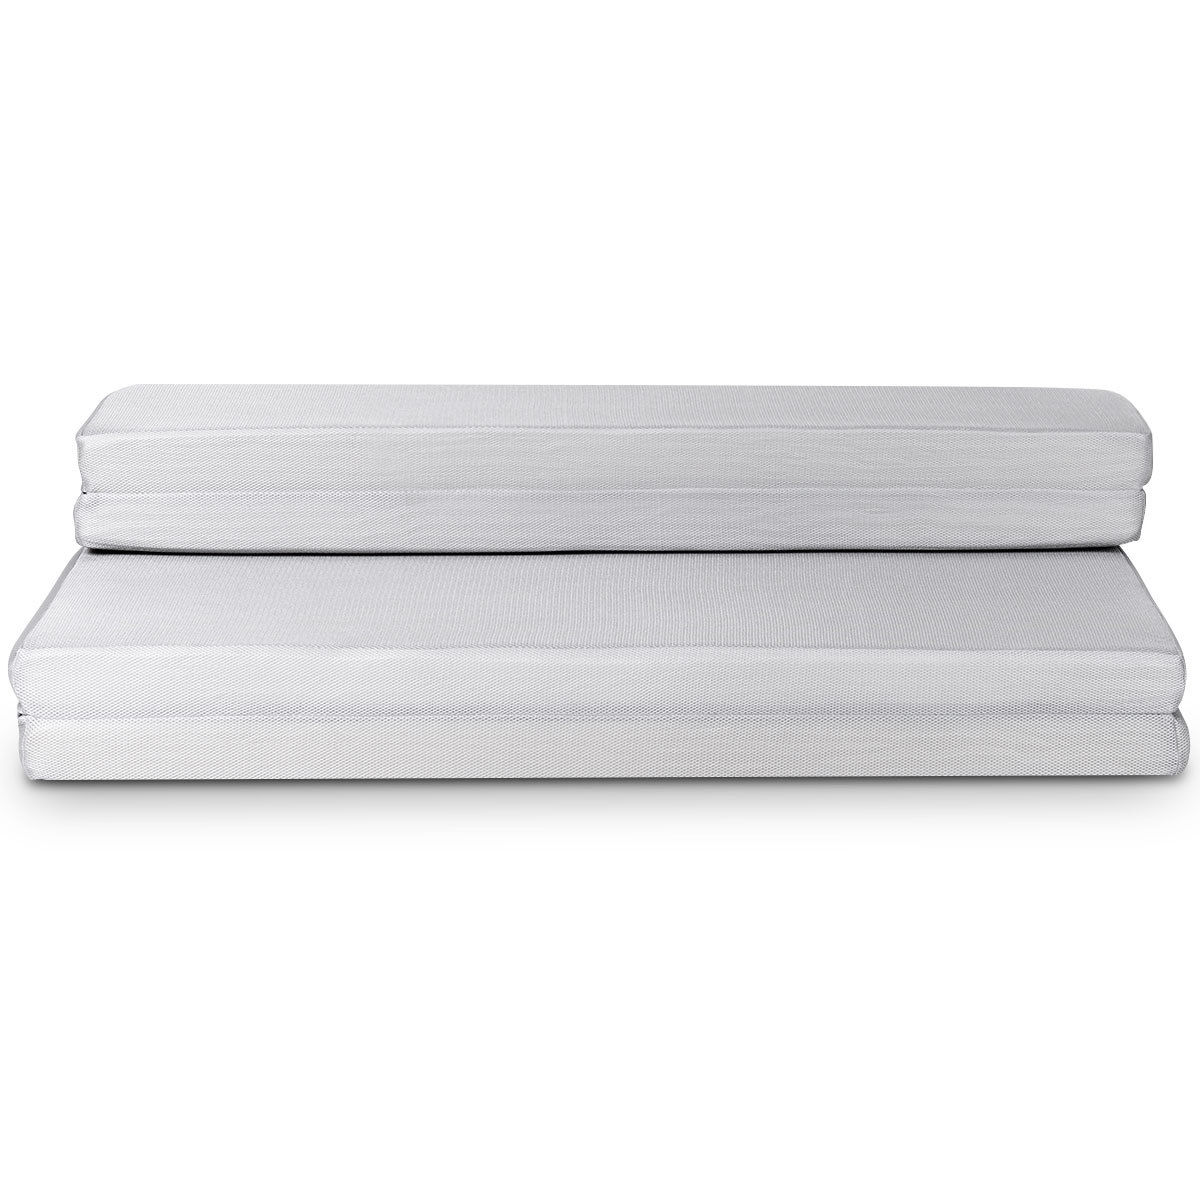 Gymax 4'' Queen Size Foam Folding Mattress Sofa Bed Guests Floor Mat Carrying Handles - image 9 de 10